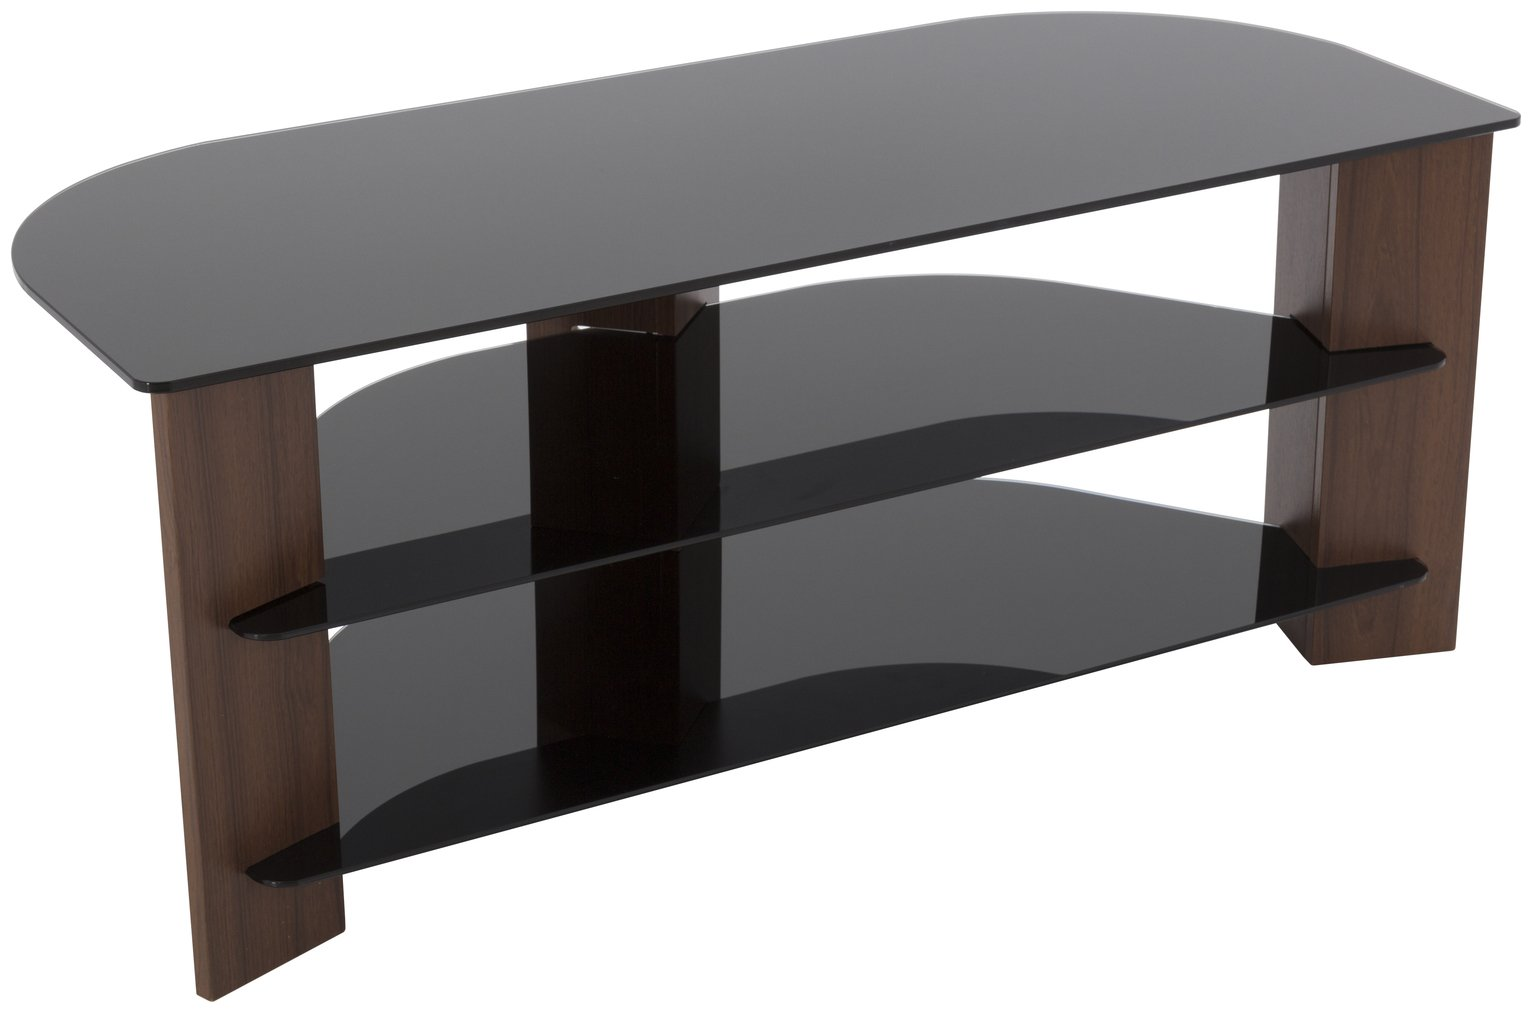 walnut-black-glass-55-inch-tv-stand